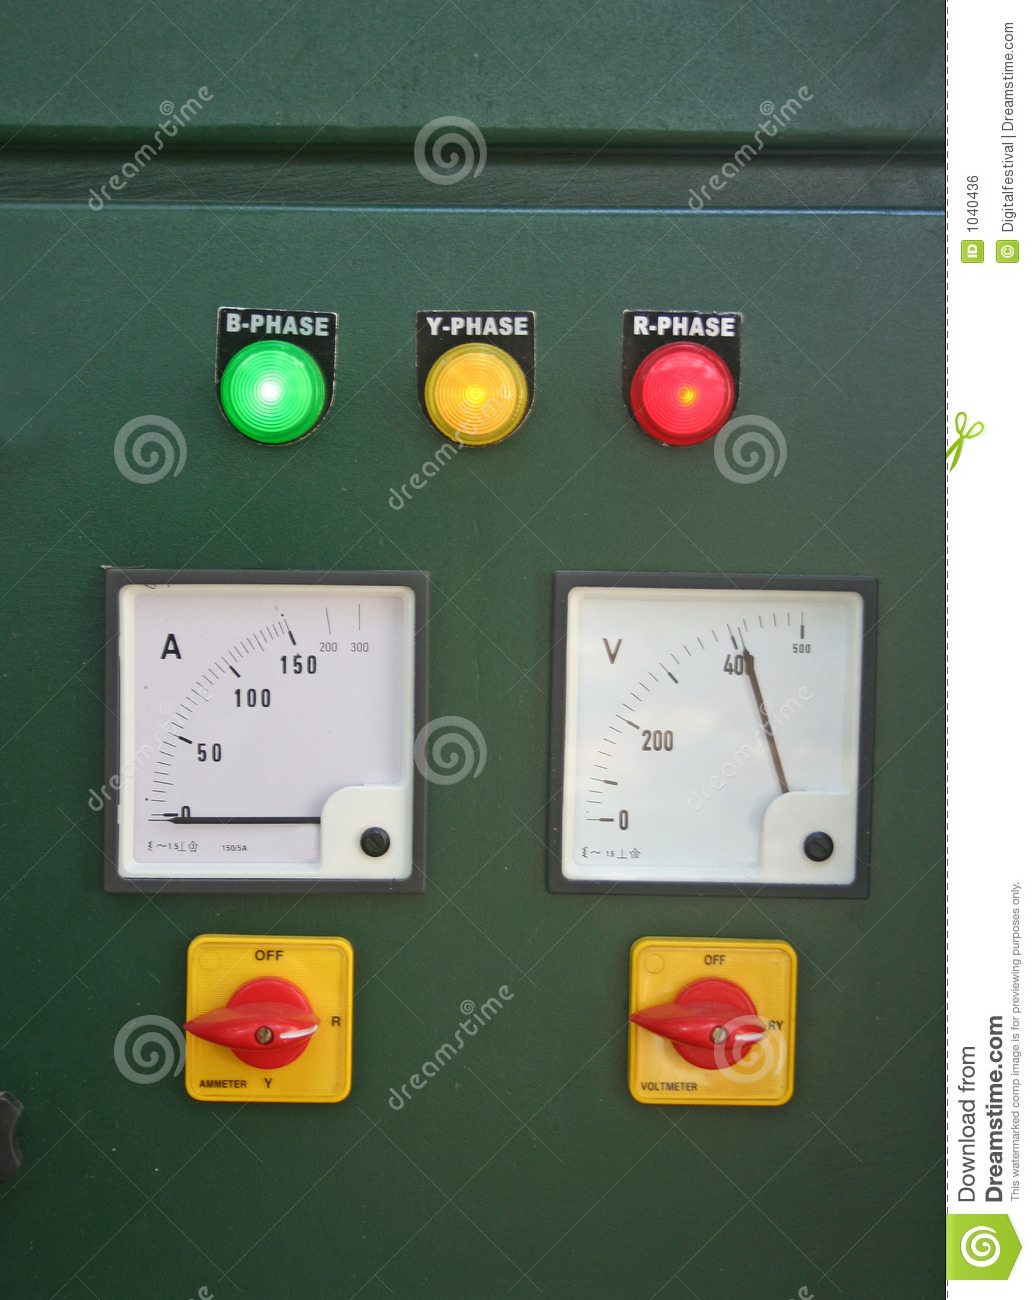 Electric Panel And Main Switch Board Lights Stock Photo - Image of on